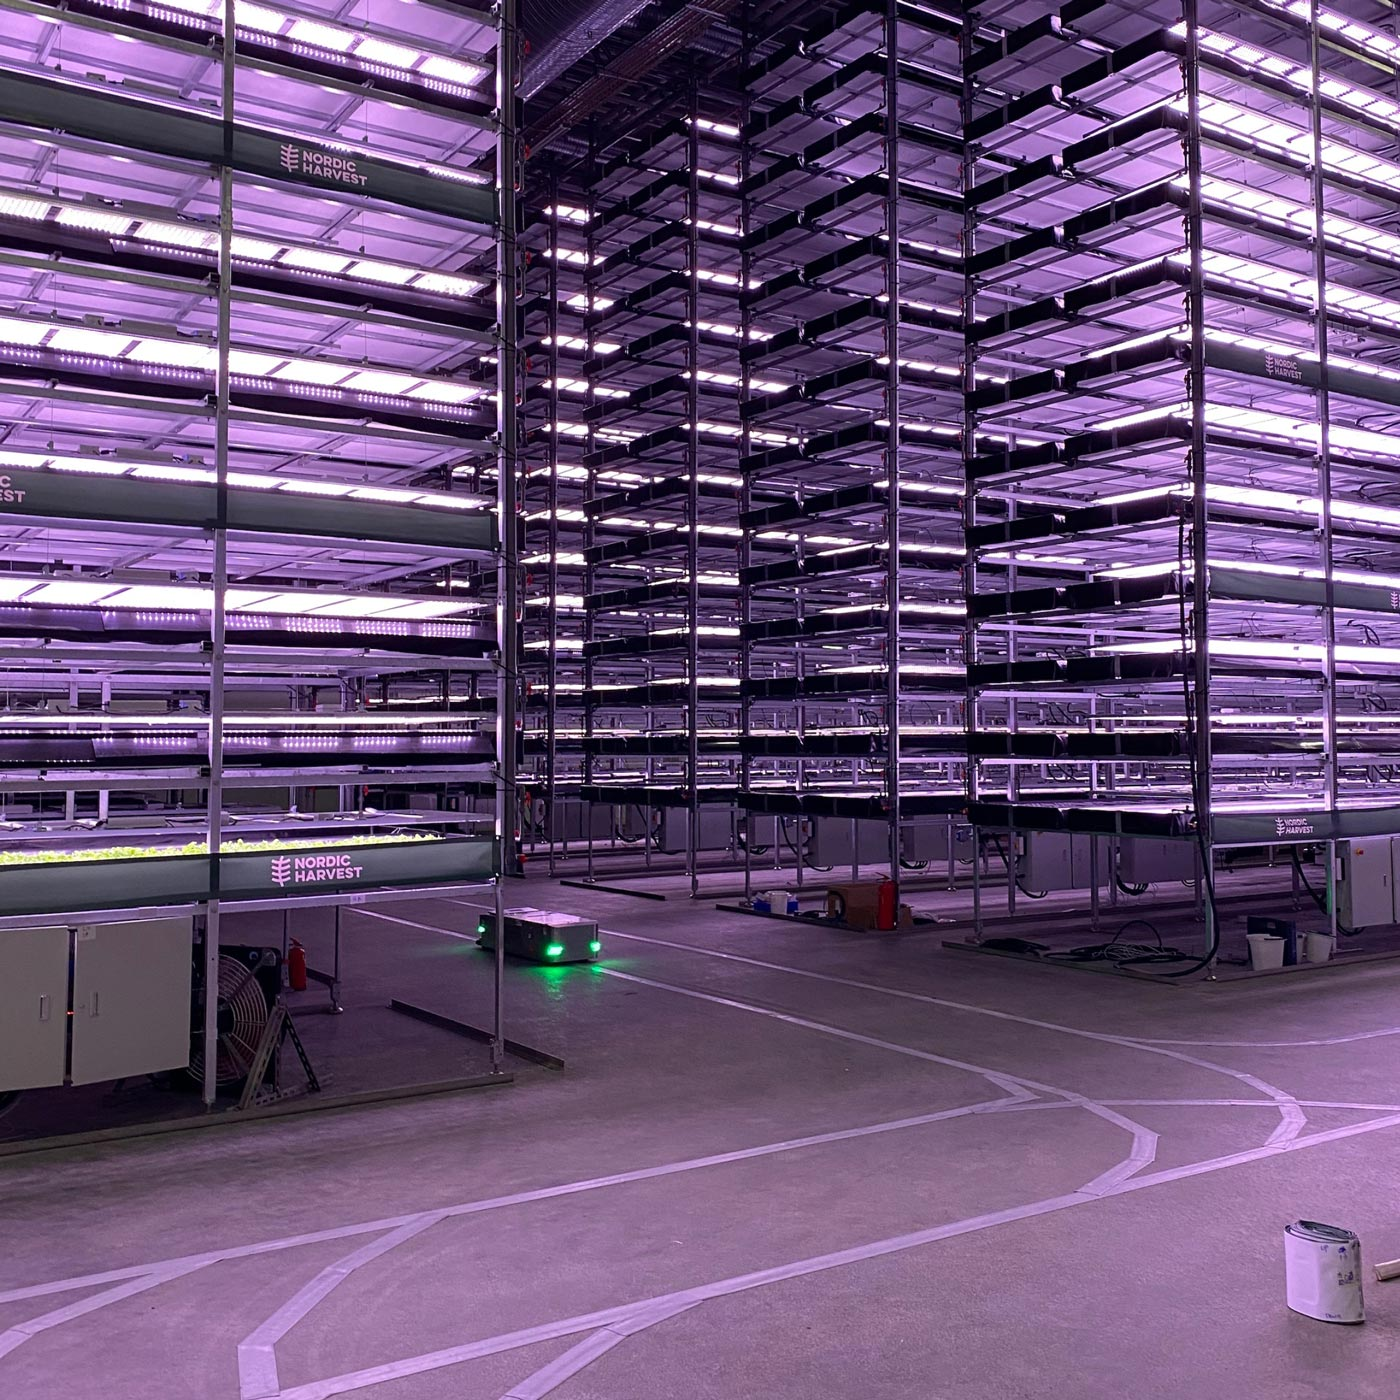 A picture of the shelves where Nordic Harvest grows its crops